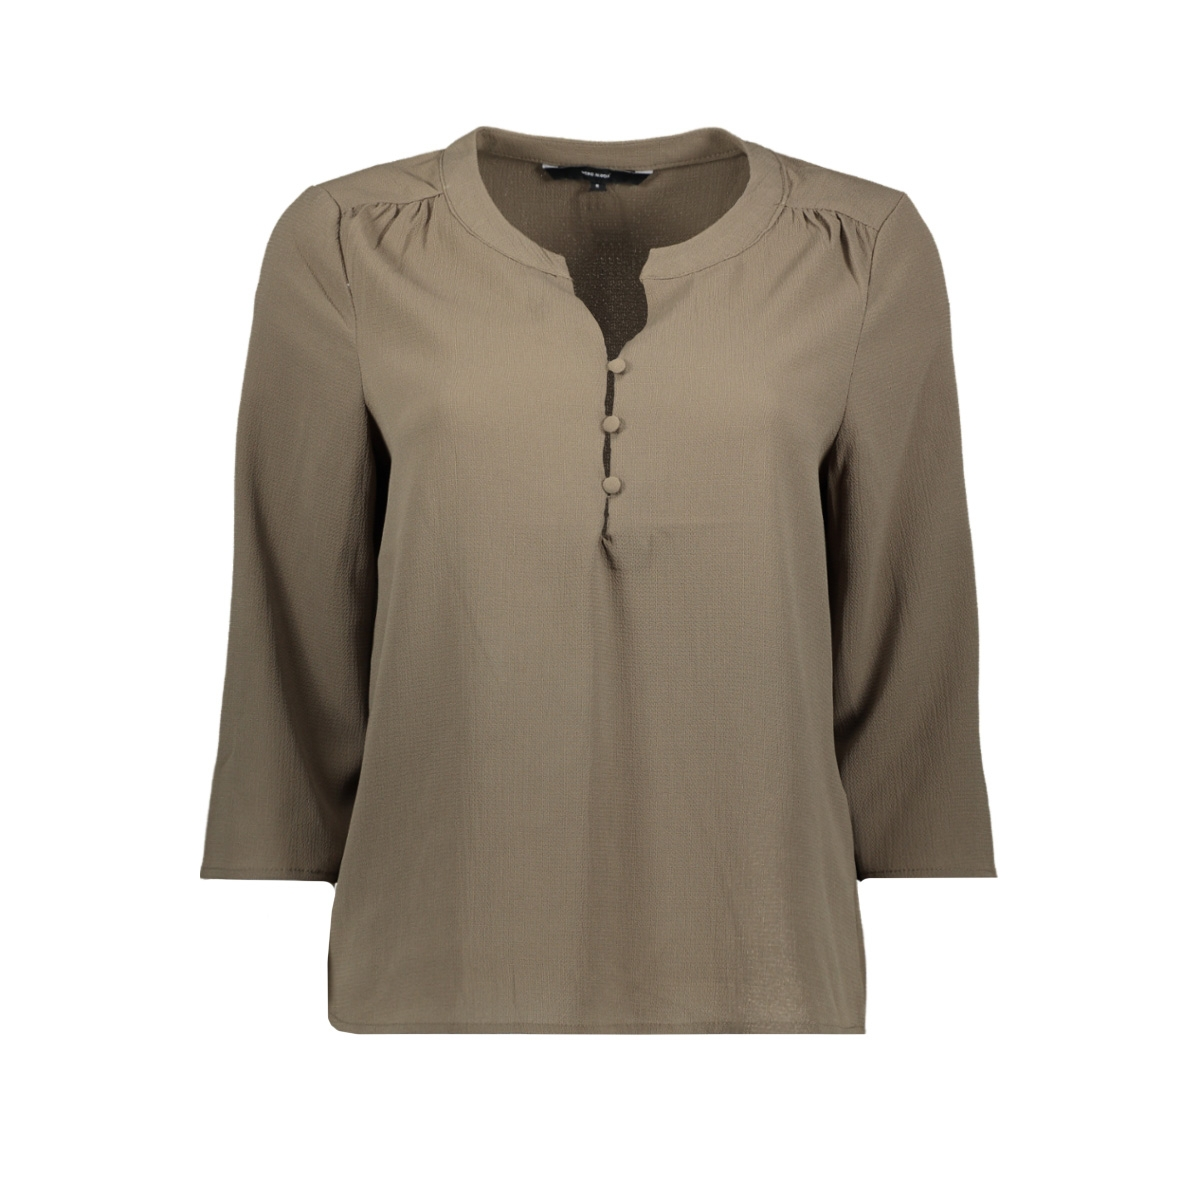 vmsasha 3/4 button top ga 10226529 vero moda t-shirt bungee cord